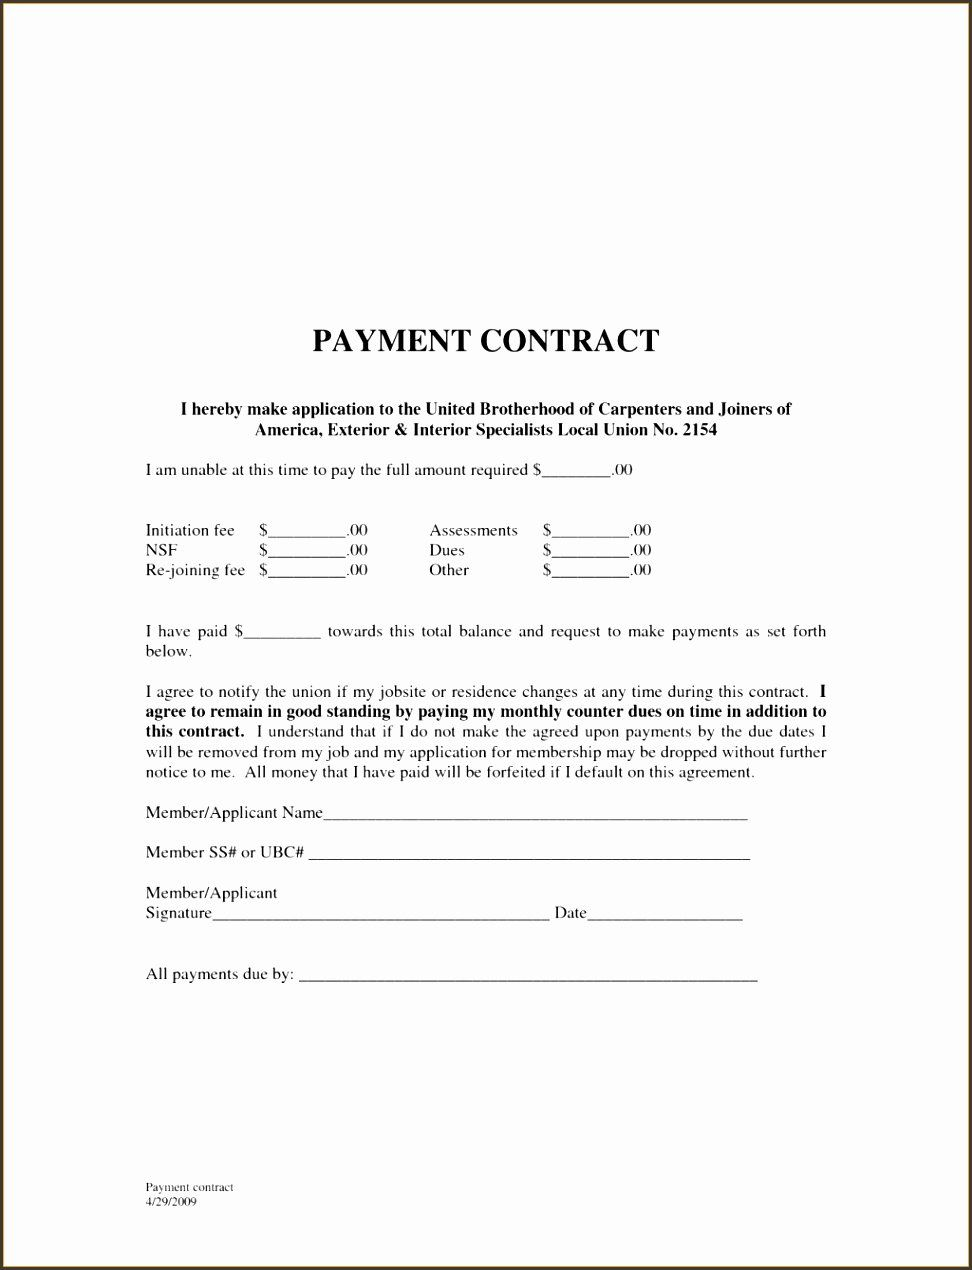 Auto Accident Settlement Agreement Sample Beautiful 9 Payment Agreement Template Sampletemplatess Payment Agreement Word Template Agreement